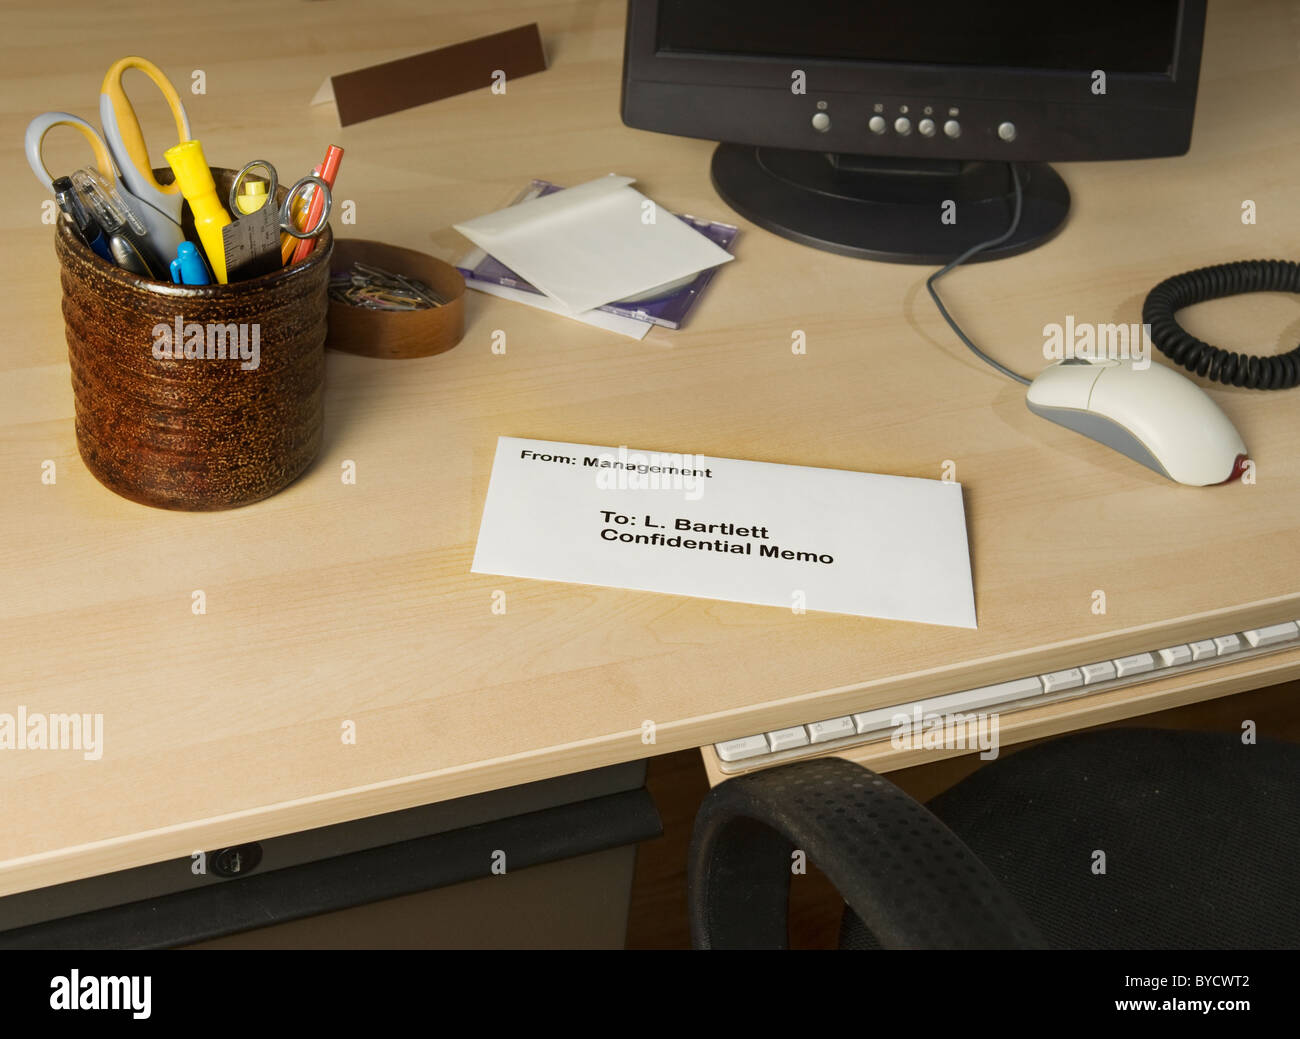 confidential memo on office desk - Stock Image